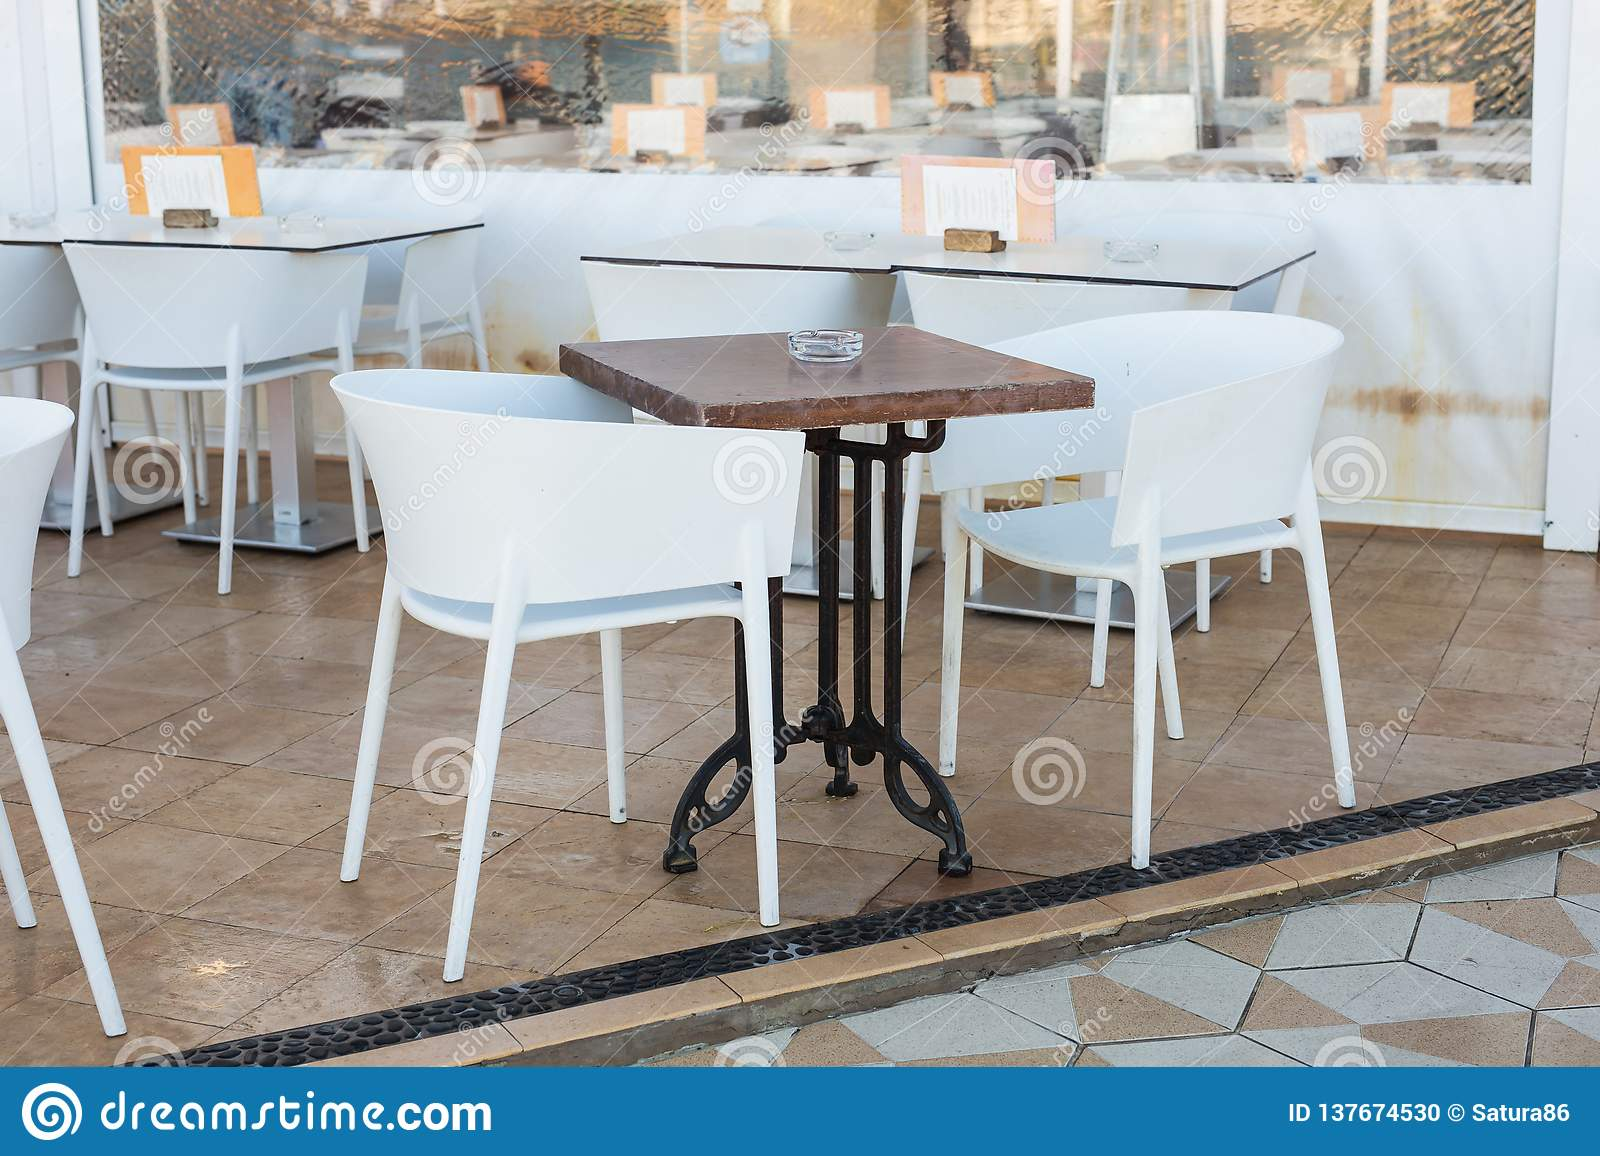 Cafe Coffee Shop Tavern And Restaurant Concept Empty Tables In Between Dining Hours In Europe Town Stock Photo Image Of Arrangement Hotel 137674530